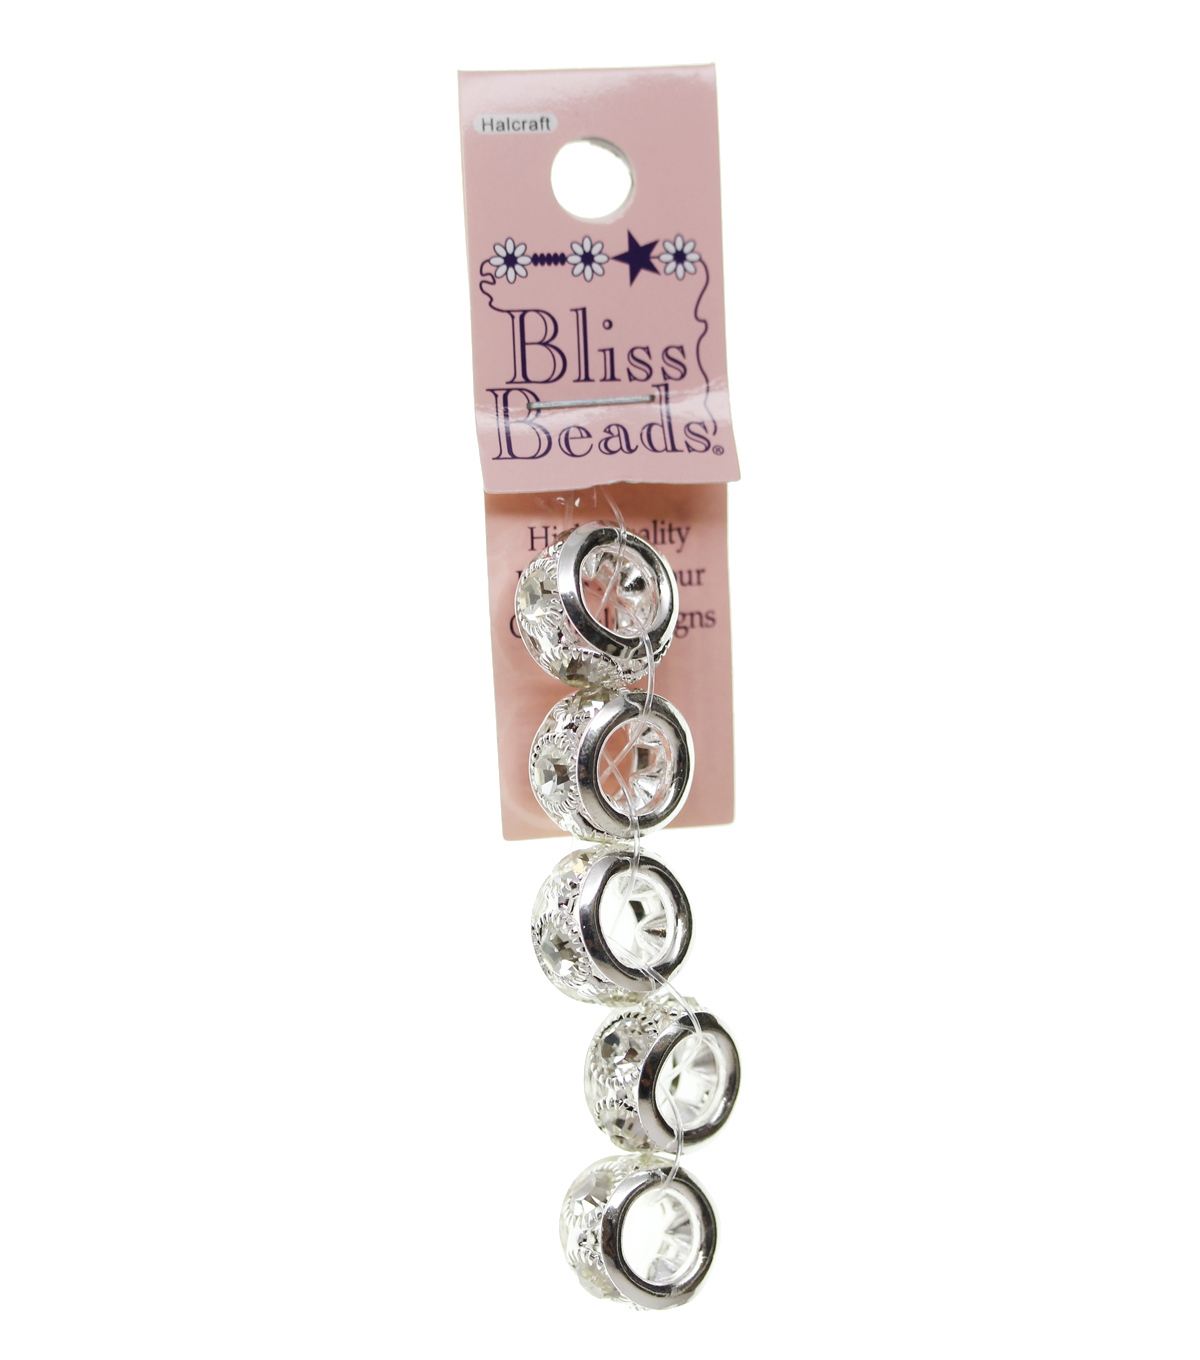 Bliss Beads Silver Plated Crystal Rondel